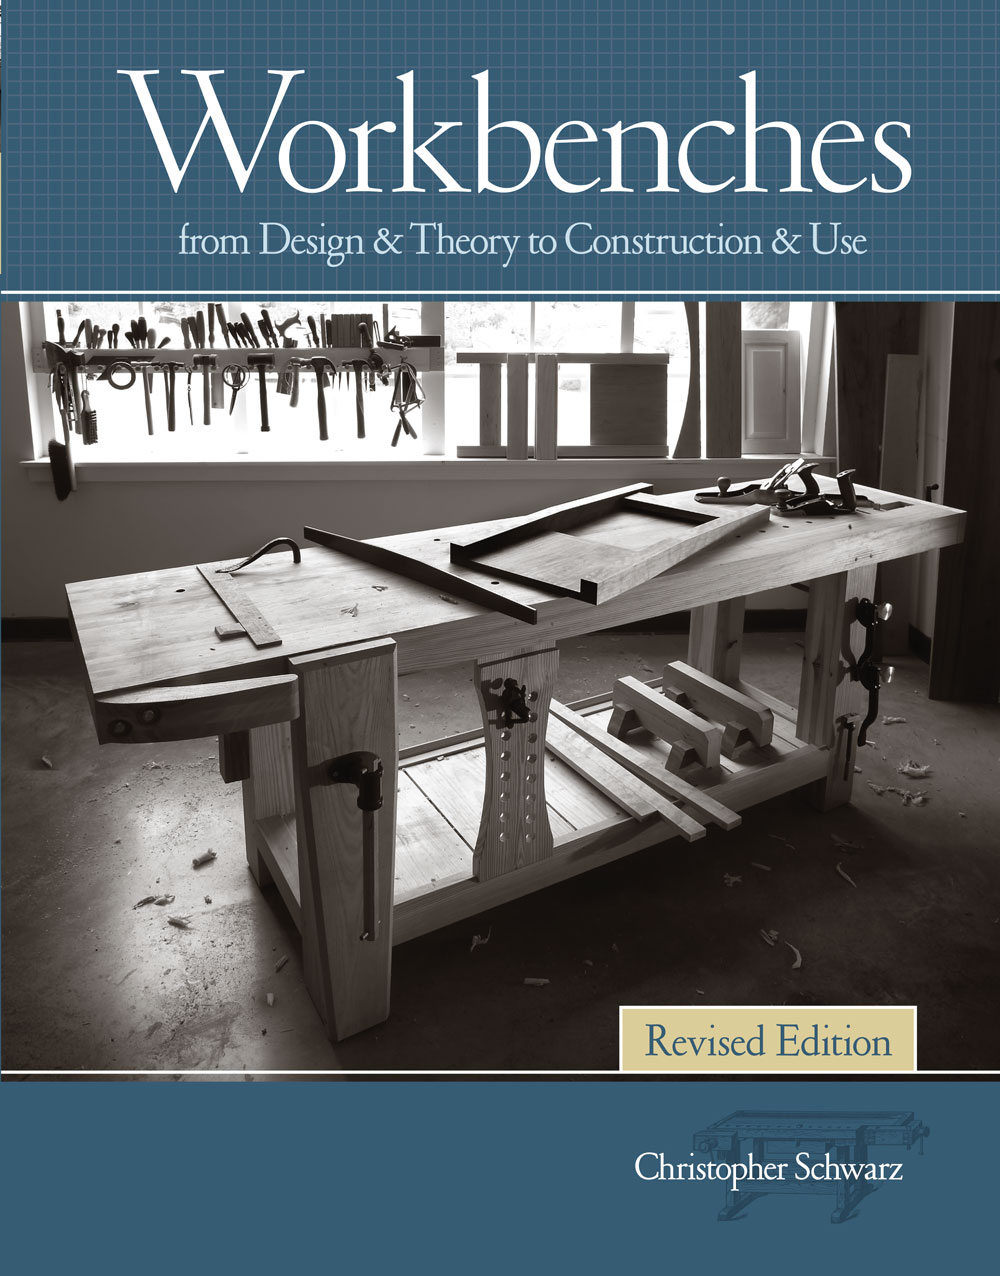 Workbenches Revised A Special Offer For Customers Lost Art Press